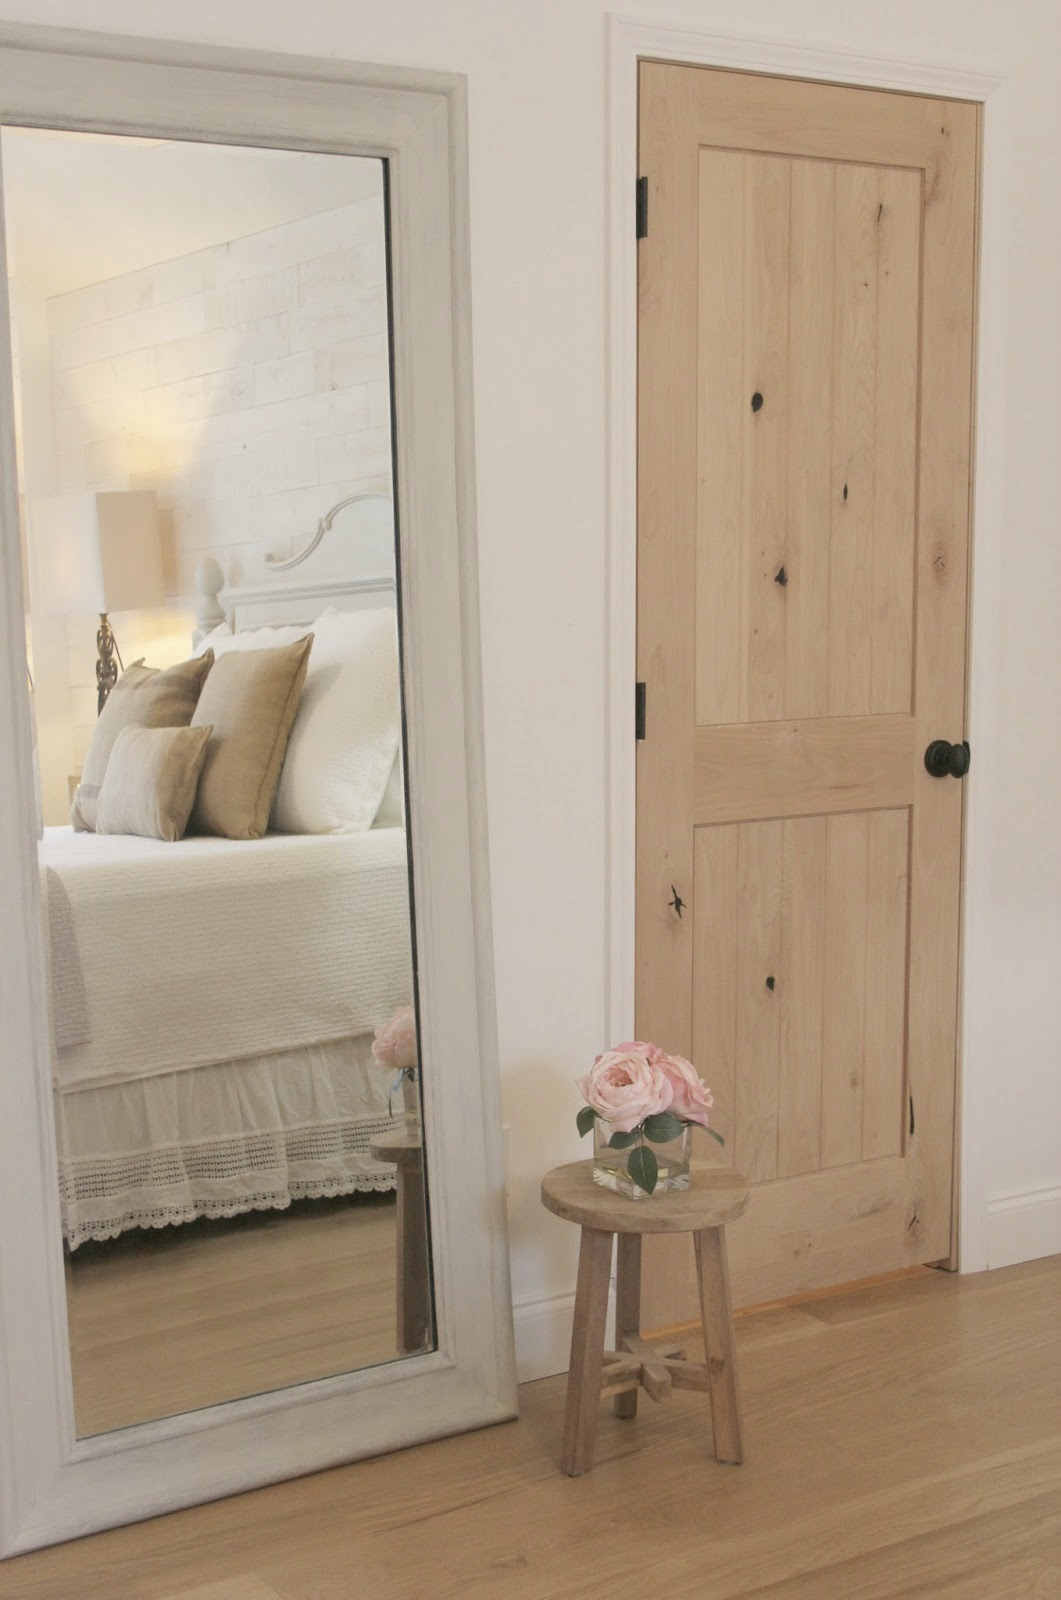 Romantic and white French country bed reflected in a leaner mirror in the bedroom. Foors are white oak hardwoods. White crochet lace bed skirt, Rustic three legged teak stool holds pink roses. Knotty alder closet door is full of character and oil rubbed bronze egg knob. Stikwood (Hamptons) reclaimed wood statement wall. #hellolovelystudio #bedroomdecor #stikwood #hamptons #knottyalder #alderdoor #whiteoakflooring